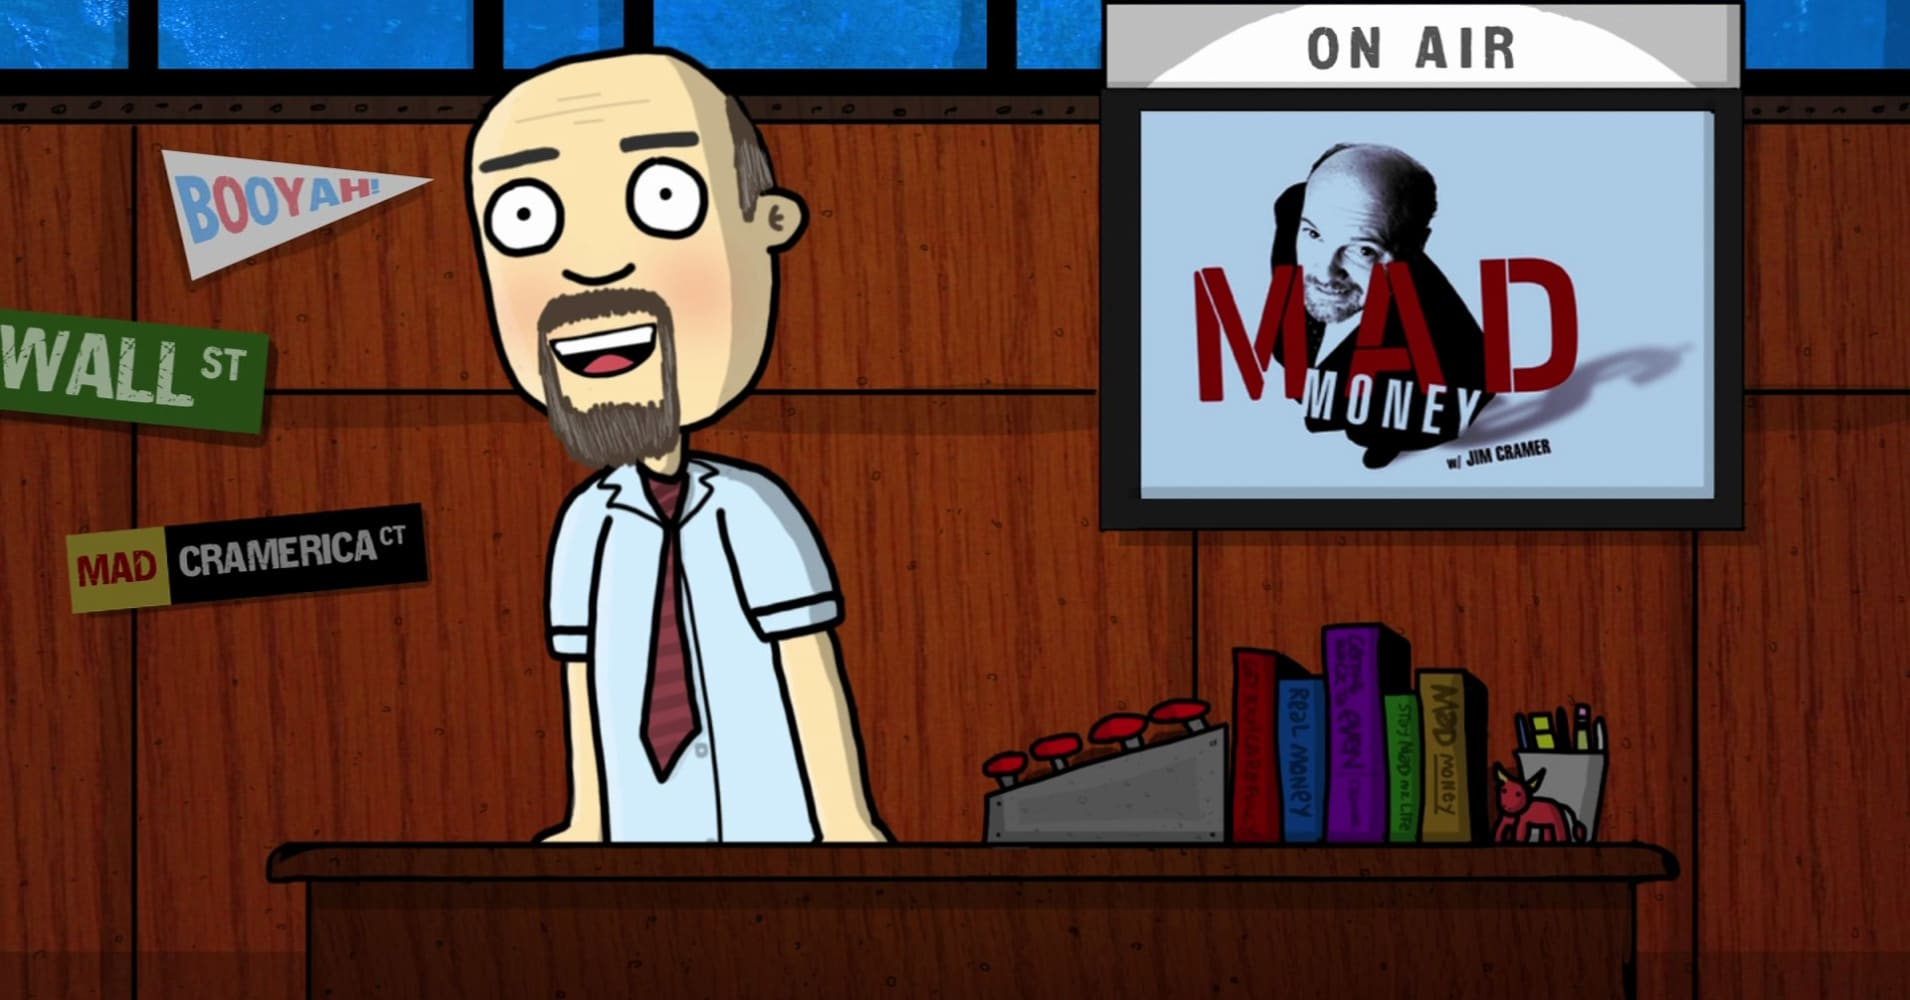 Watch Cramer as a real-time cartoon, and why it made him a believer in Adobe stock